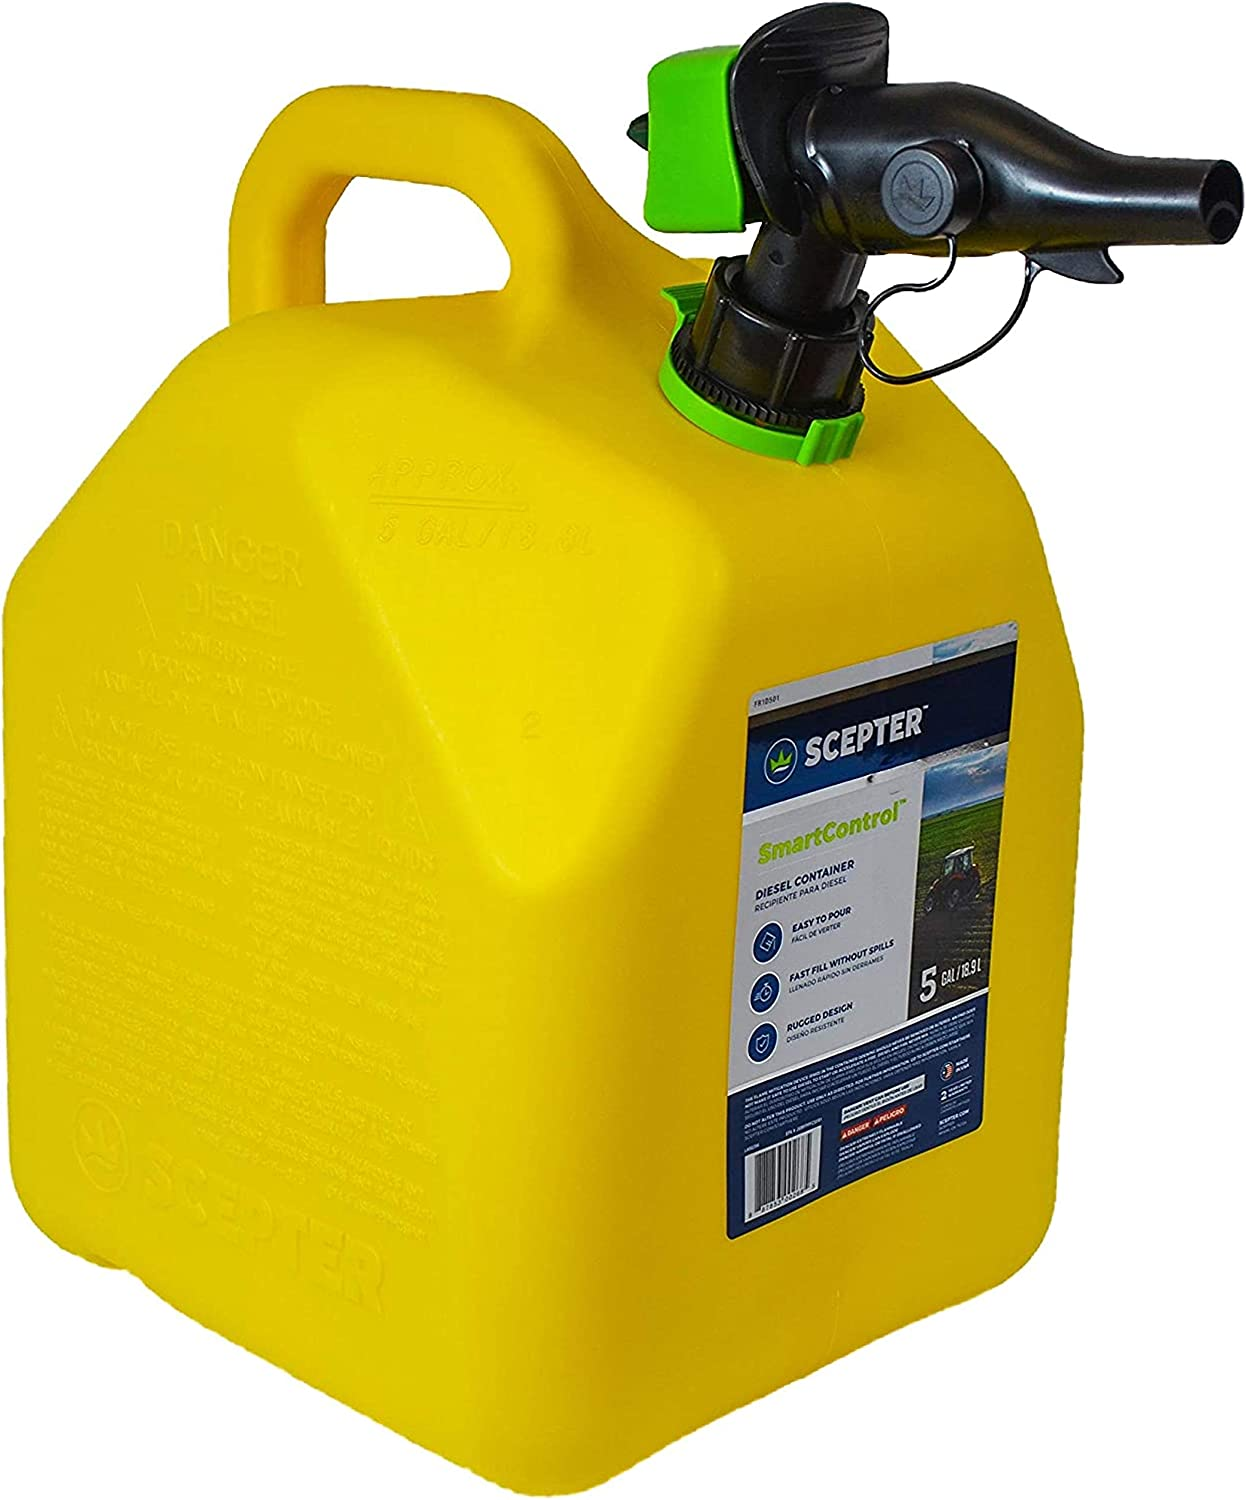 Scepter 5 Gallon SmartControl Gas Can with an Integrated Air Vent in Spout